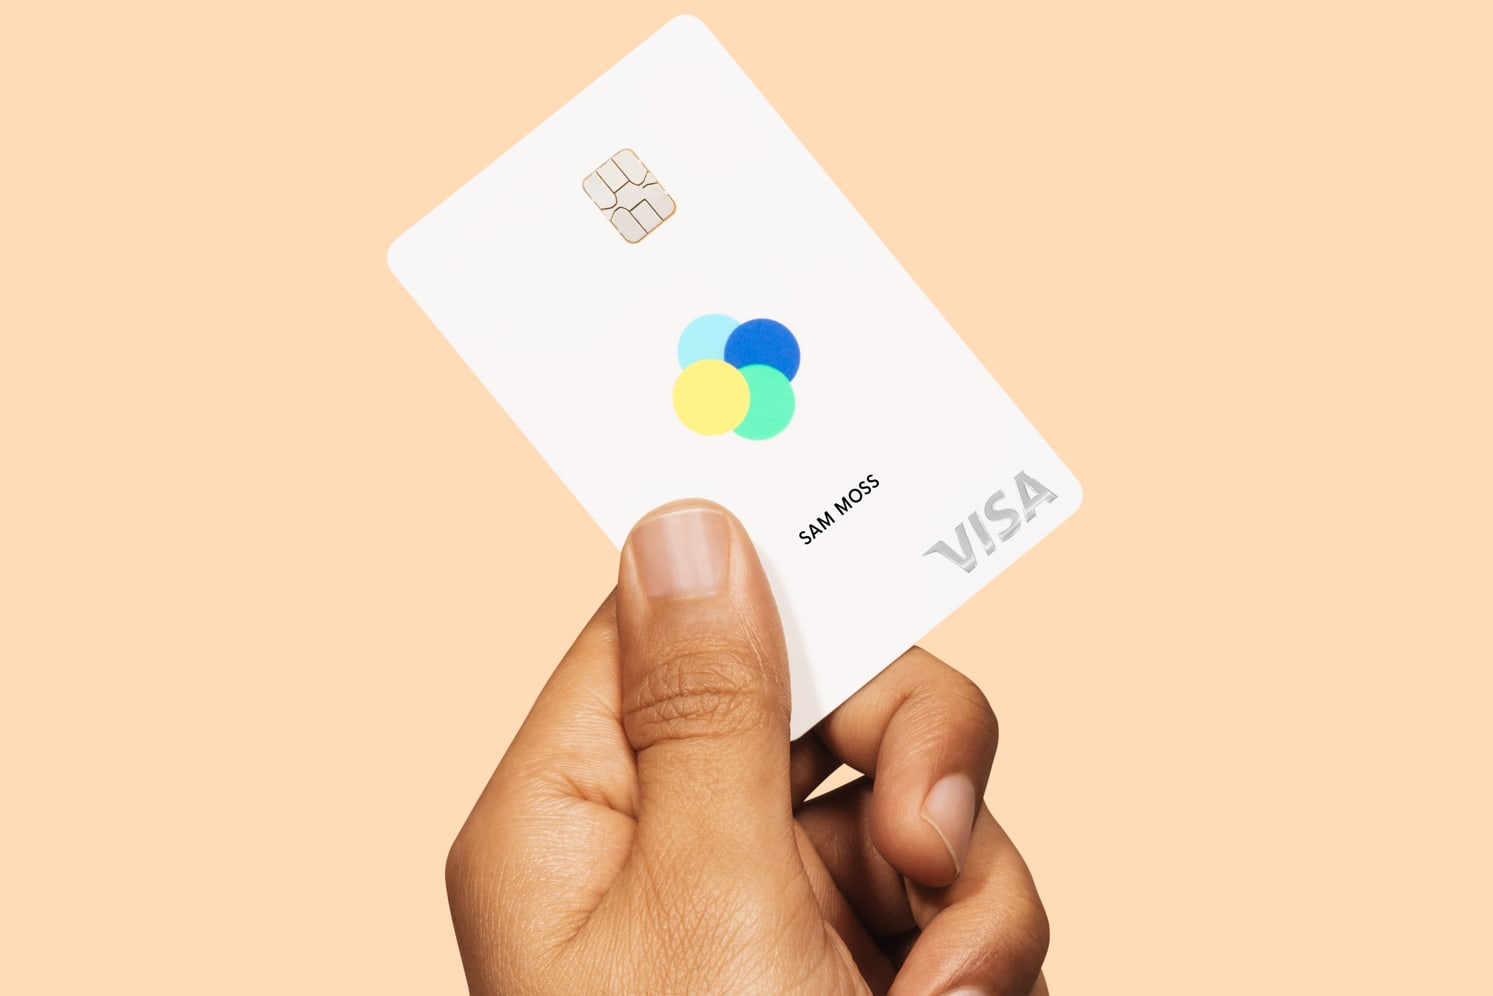 Credit card start-up Petal raises $300 million debt round from Jefferies